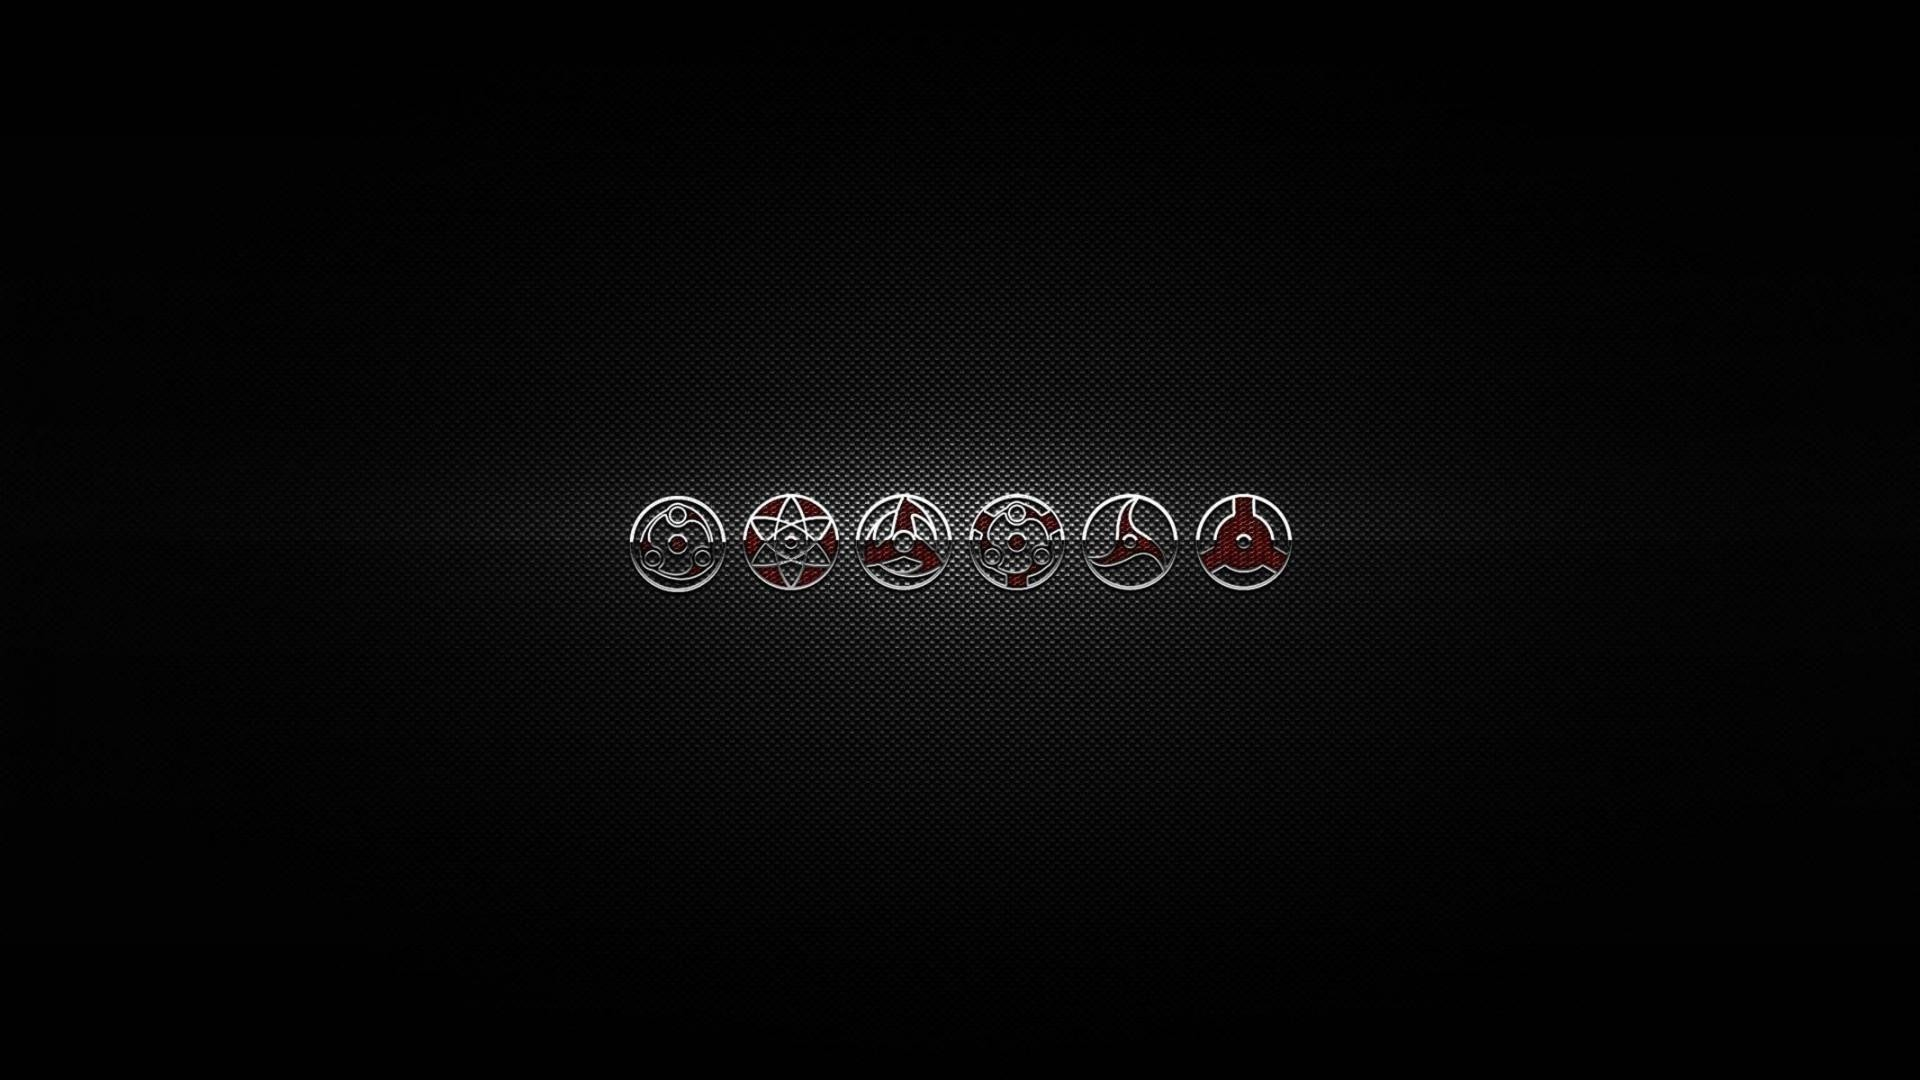 Hd Sharingan Wallpaper: Sharingan Wallpaper HD 1920x1080 (65+ Images